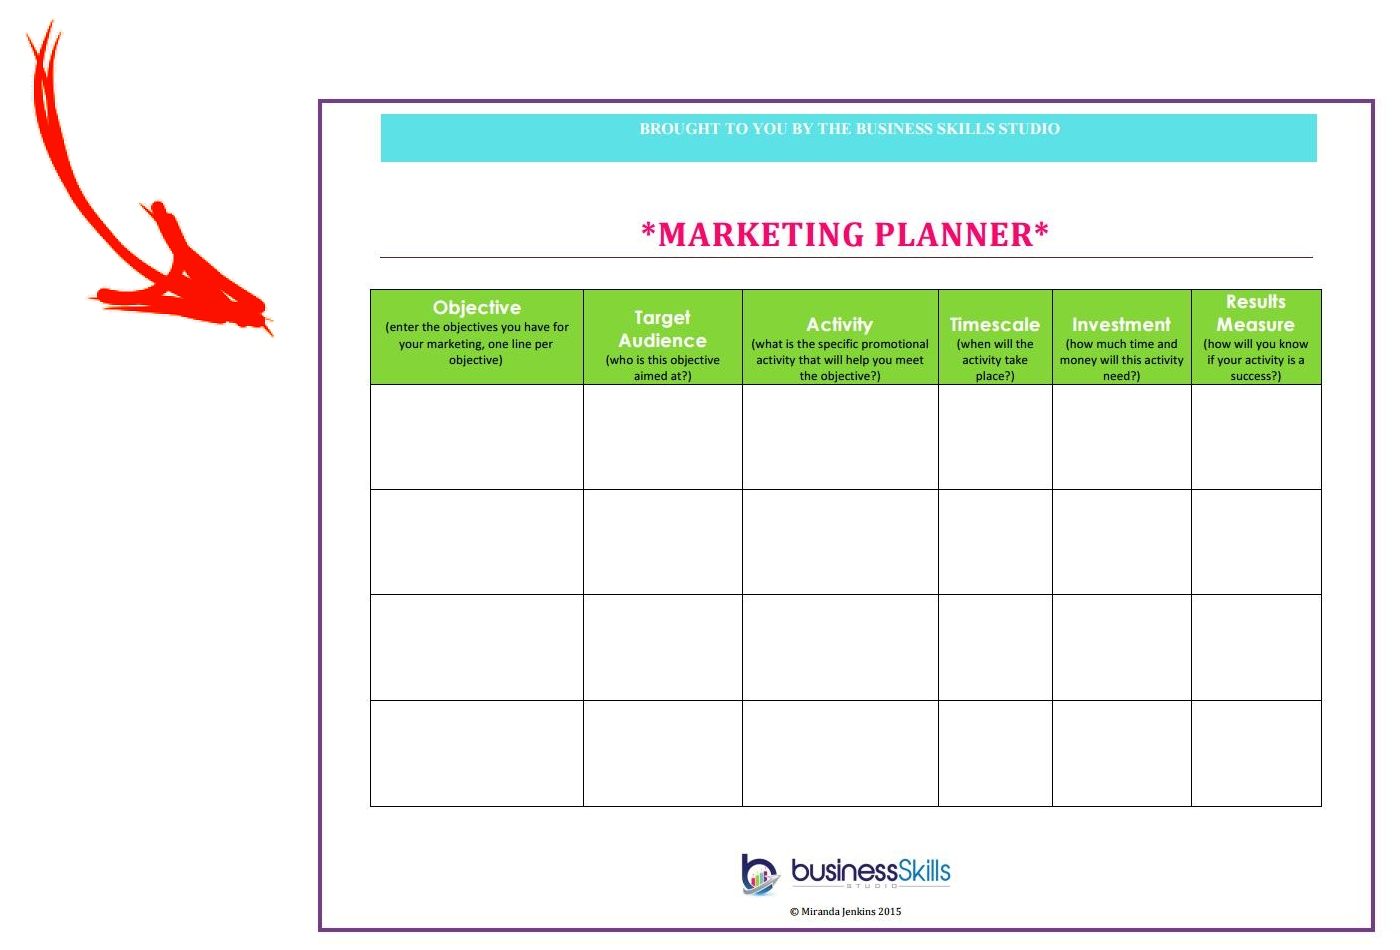 marketingplanner